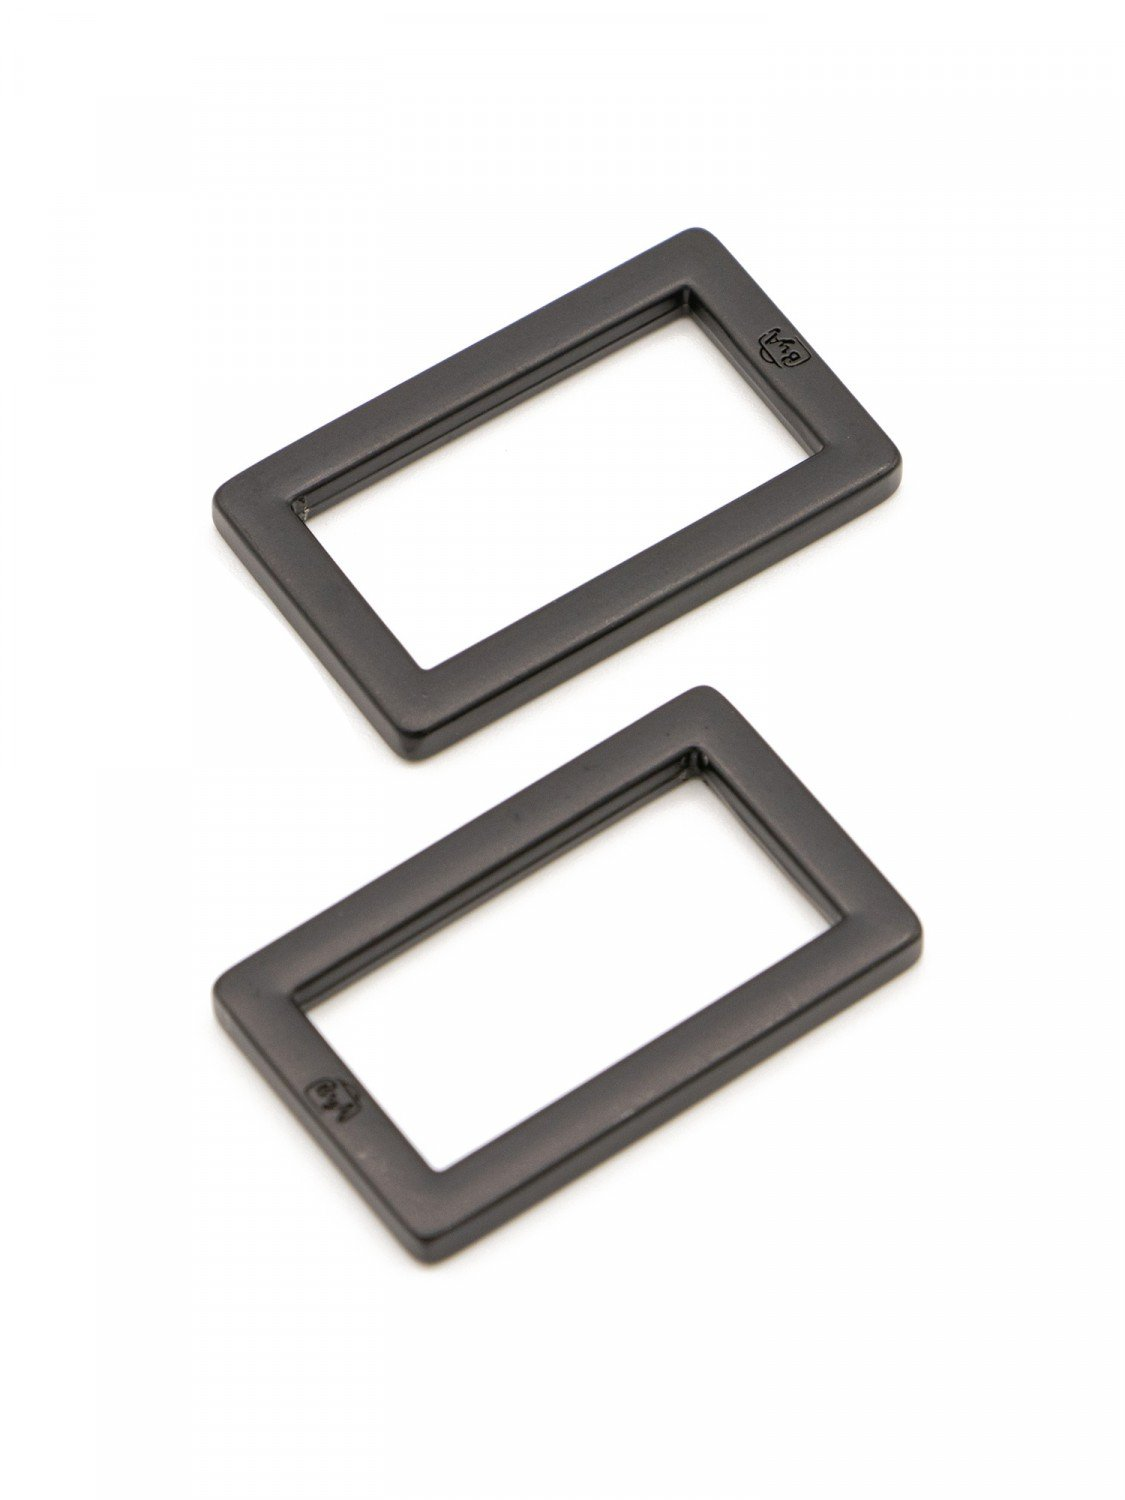 Annie's 1 Rectangle Ring - Flat (Set of 2)